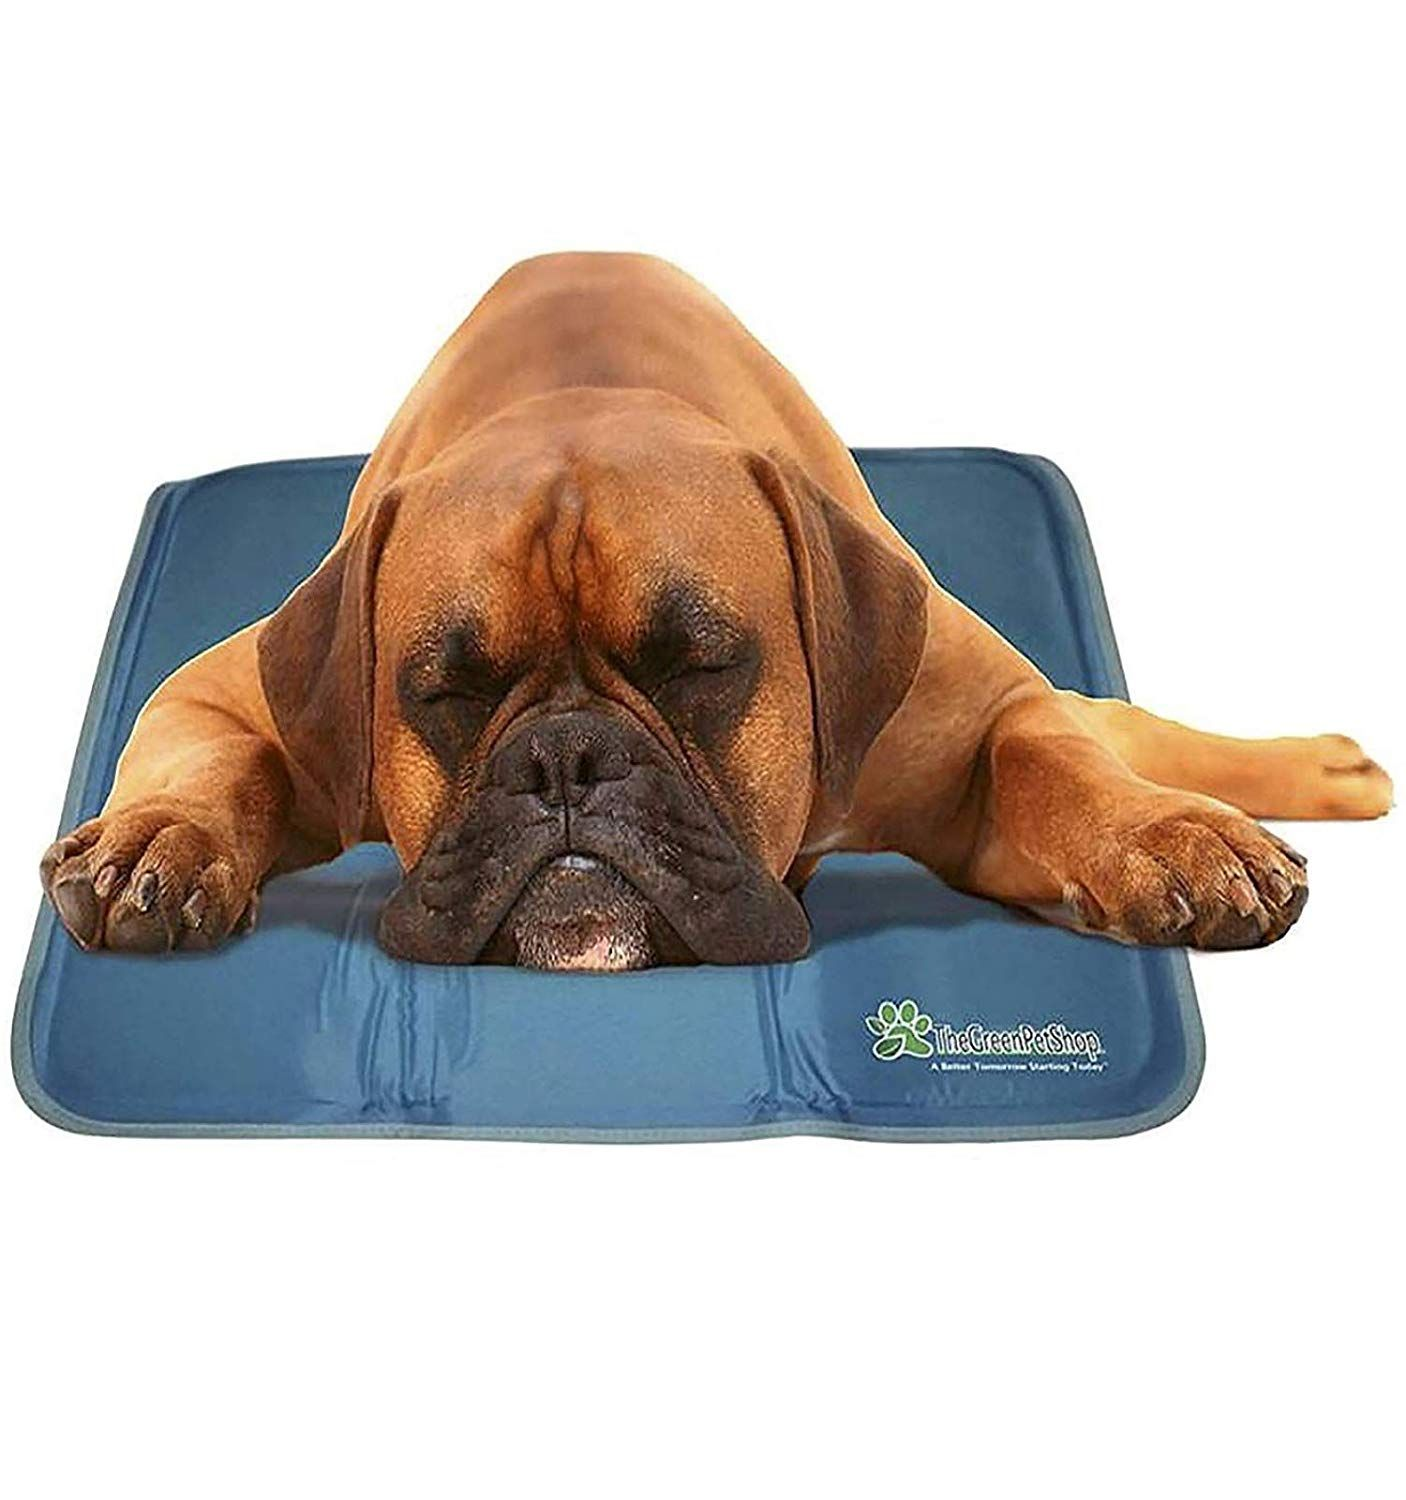 The Green Pet Shop Dog Cooling Mat Patented Pressure Activated